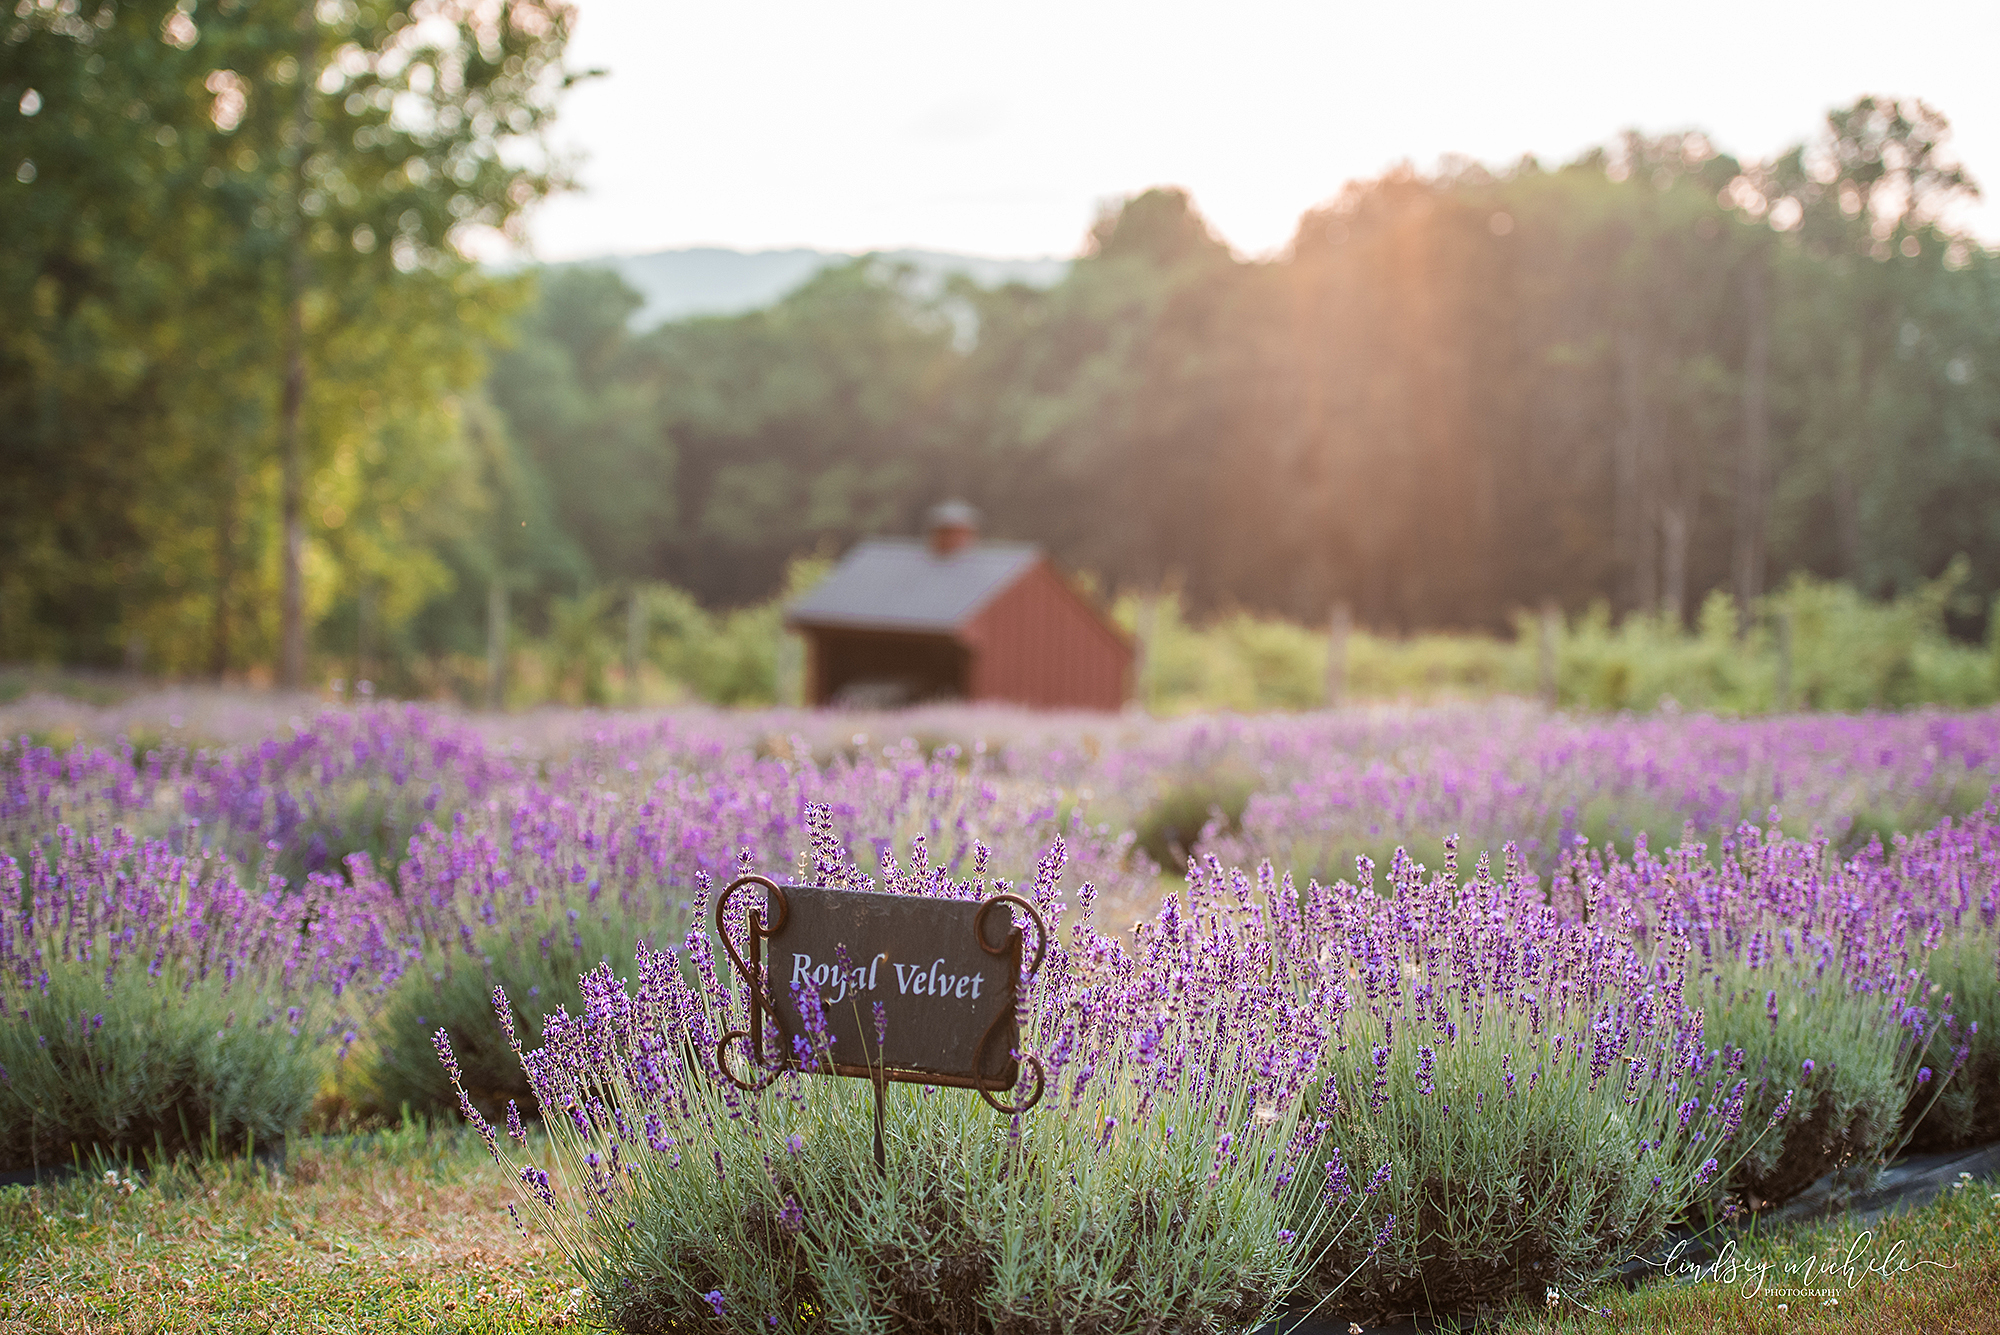 Orchard View Lavender Farm